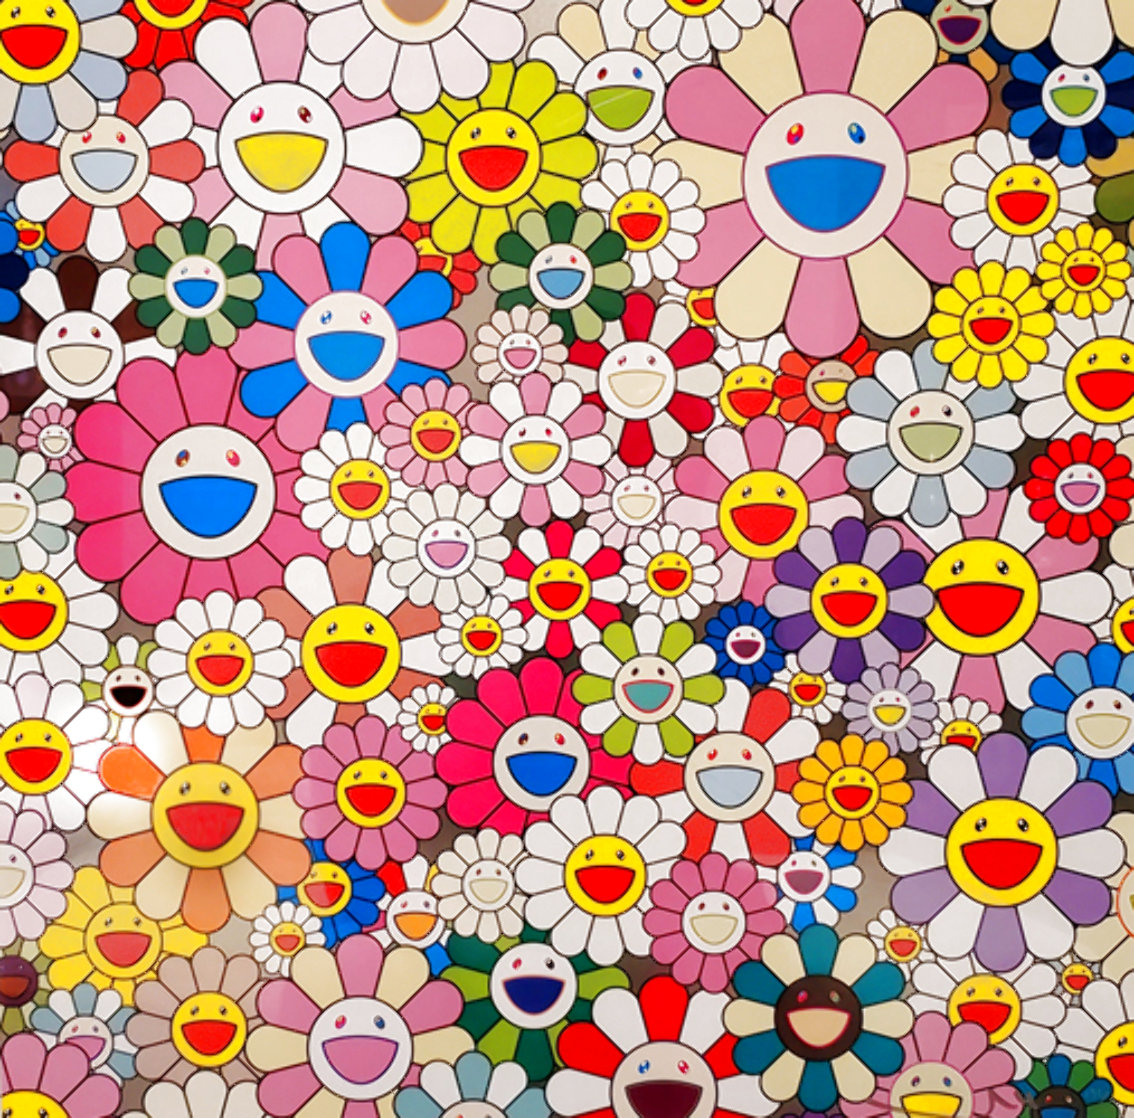 Flower Smile 2011 Limited Edition Print by Takashi Murakami